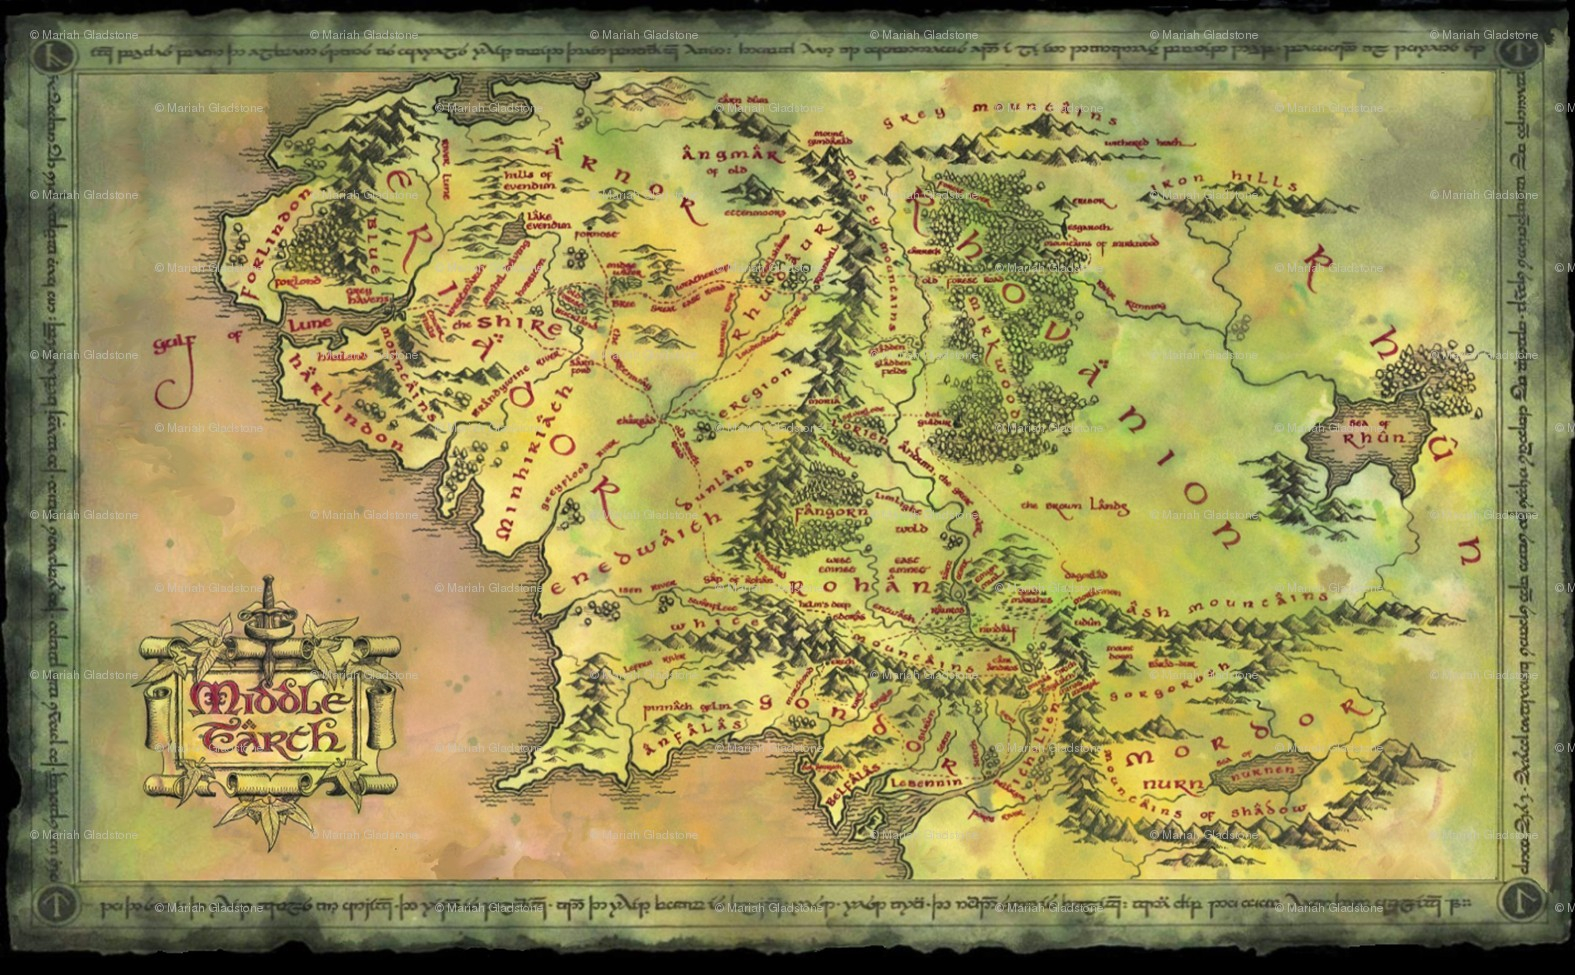 Map Of Middle Earth From Lord The Rings For Large Noavg Me At - Printable Map Of Middle Earth